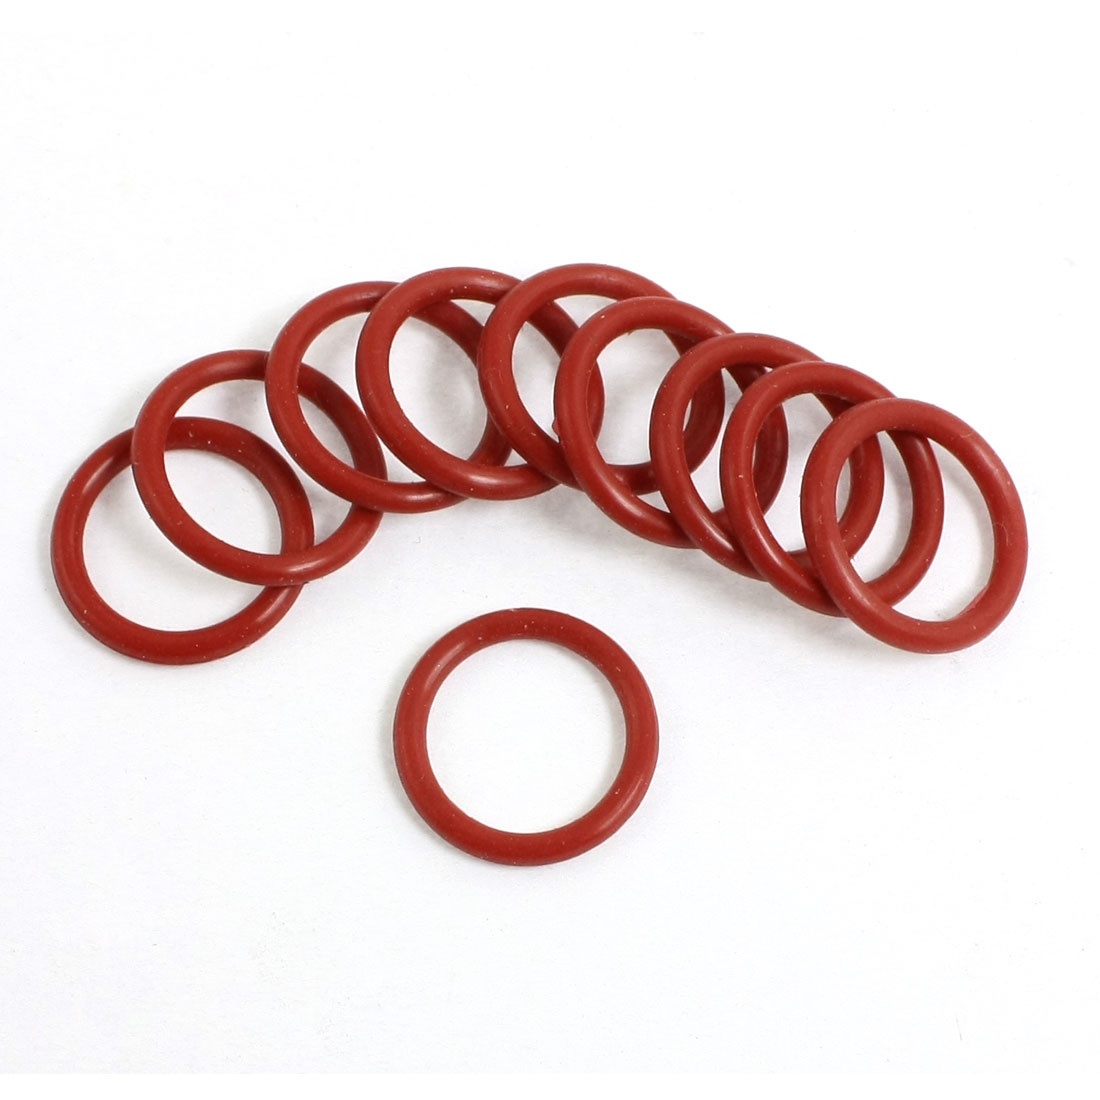 10 Pcs Flexible Rubber O Ring Seal Washer Replacement Red 16mmx2mm